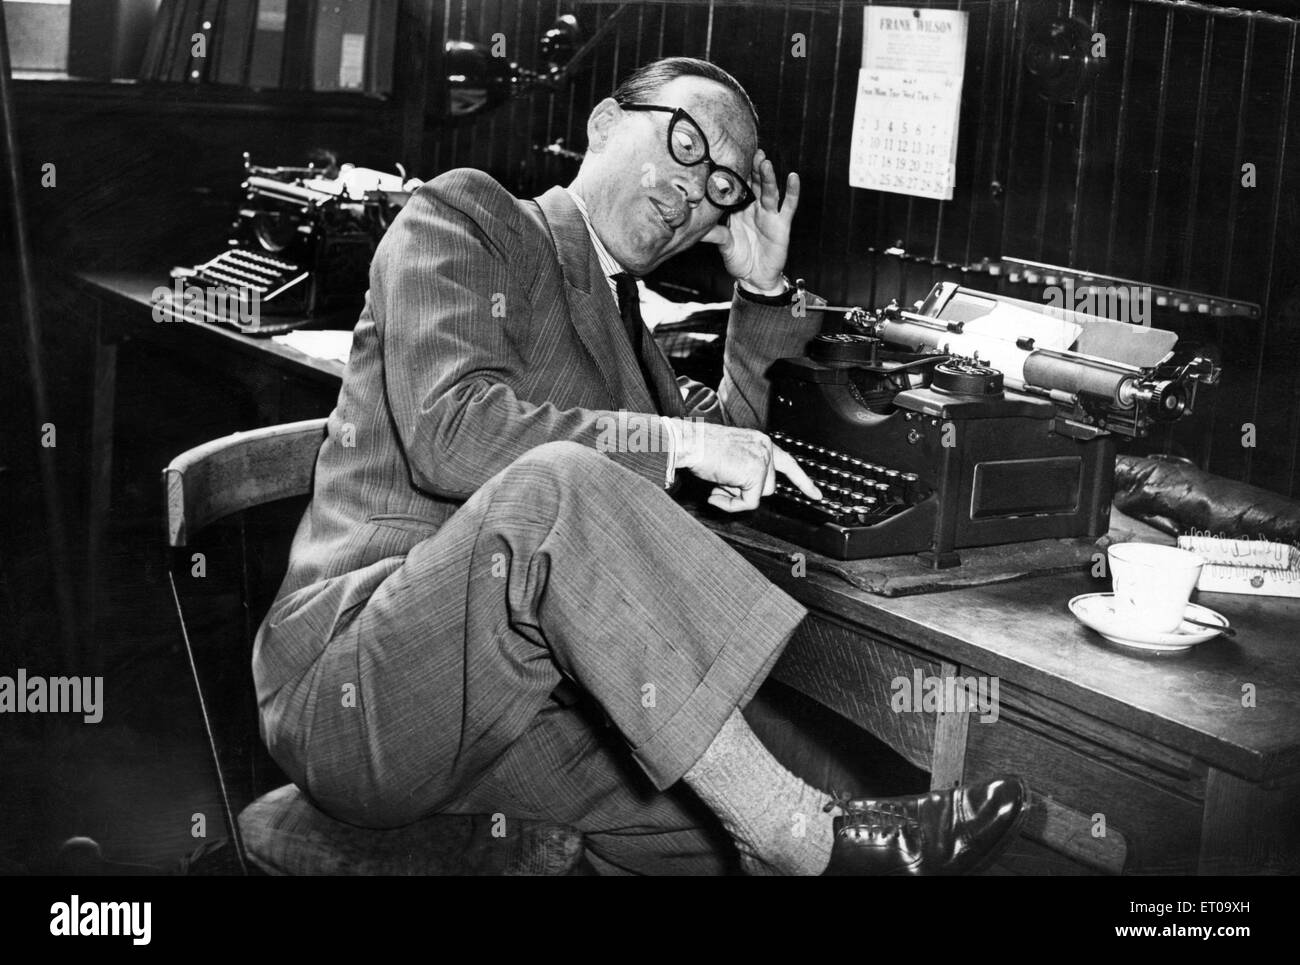 Arthur Askey CBE (6th June 1900 - 16th November 1982), comedian and actor. Pictured at his old desk, where he worked - Stock Image